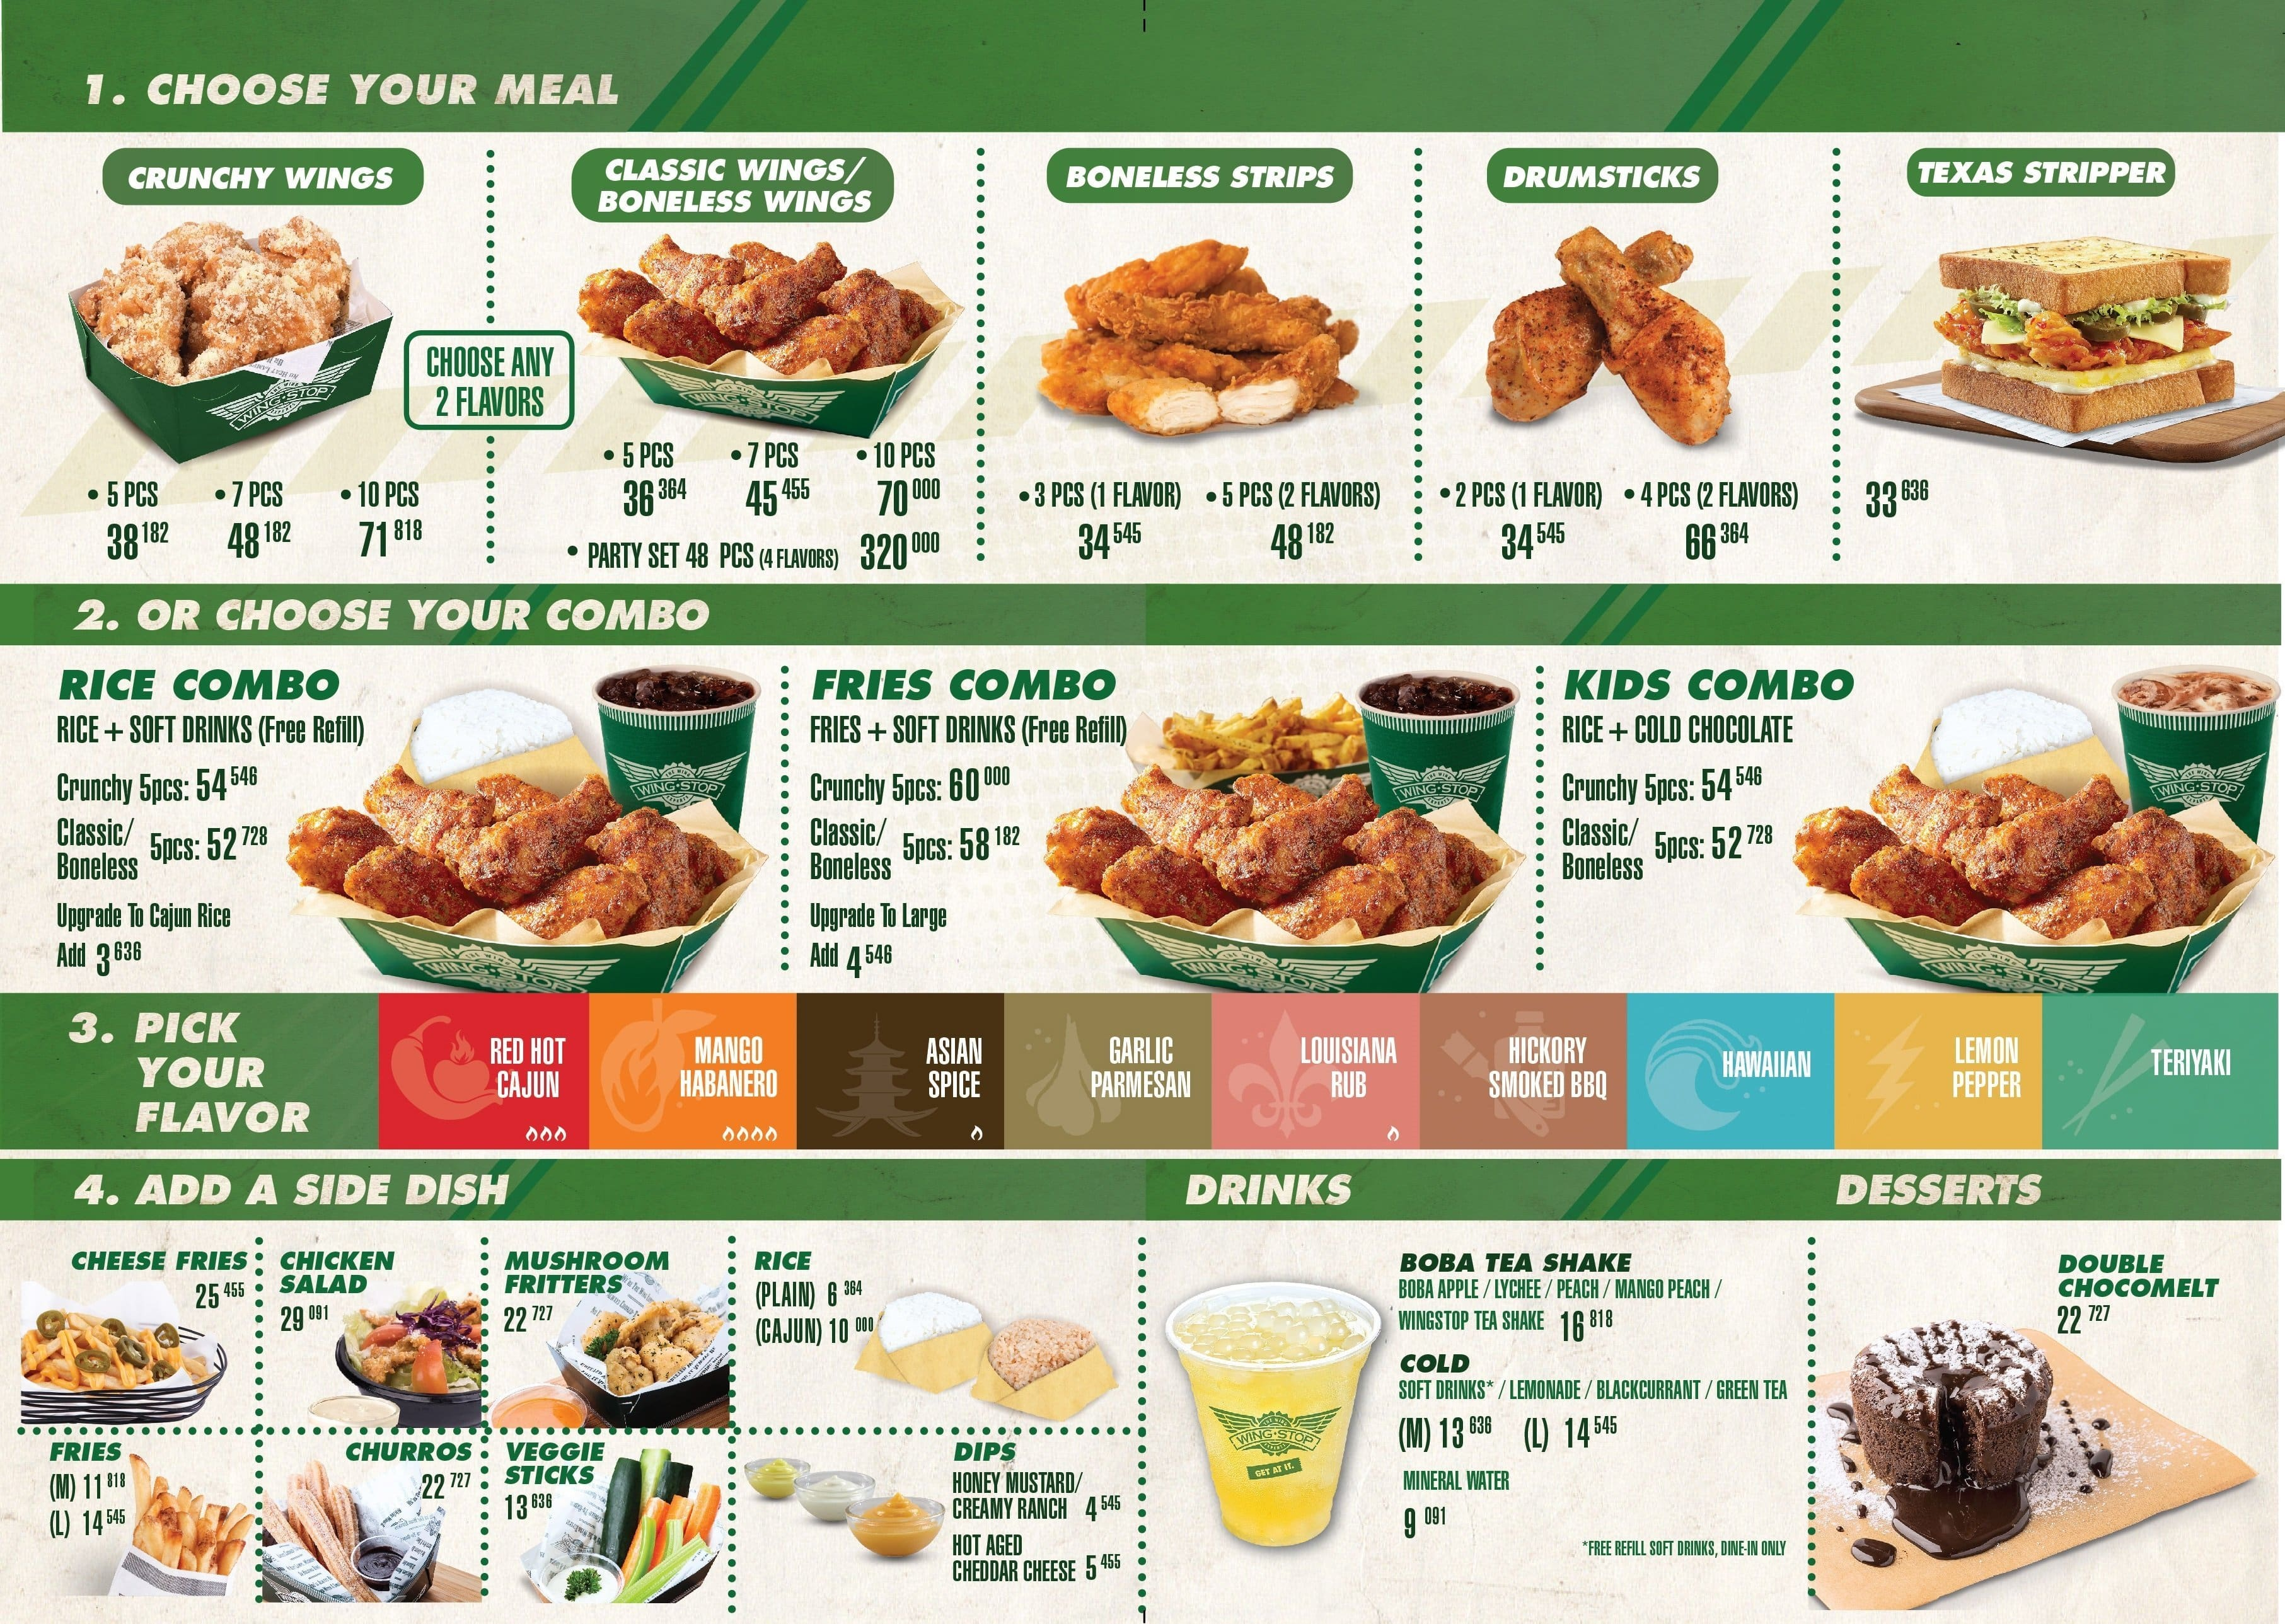 photograph about Wingstop Printable Menu known as Wingstop cafe - Sleeping bag with pillow